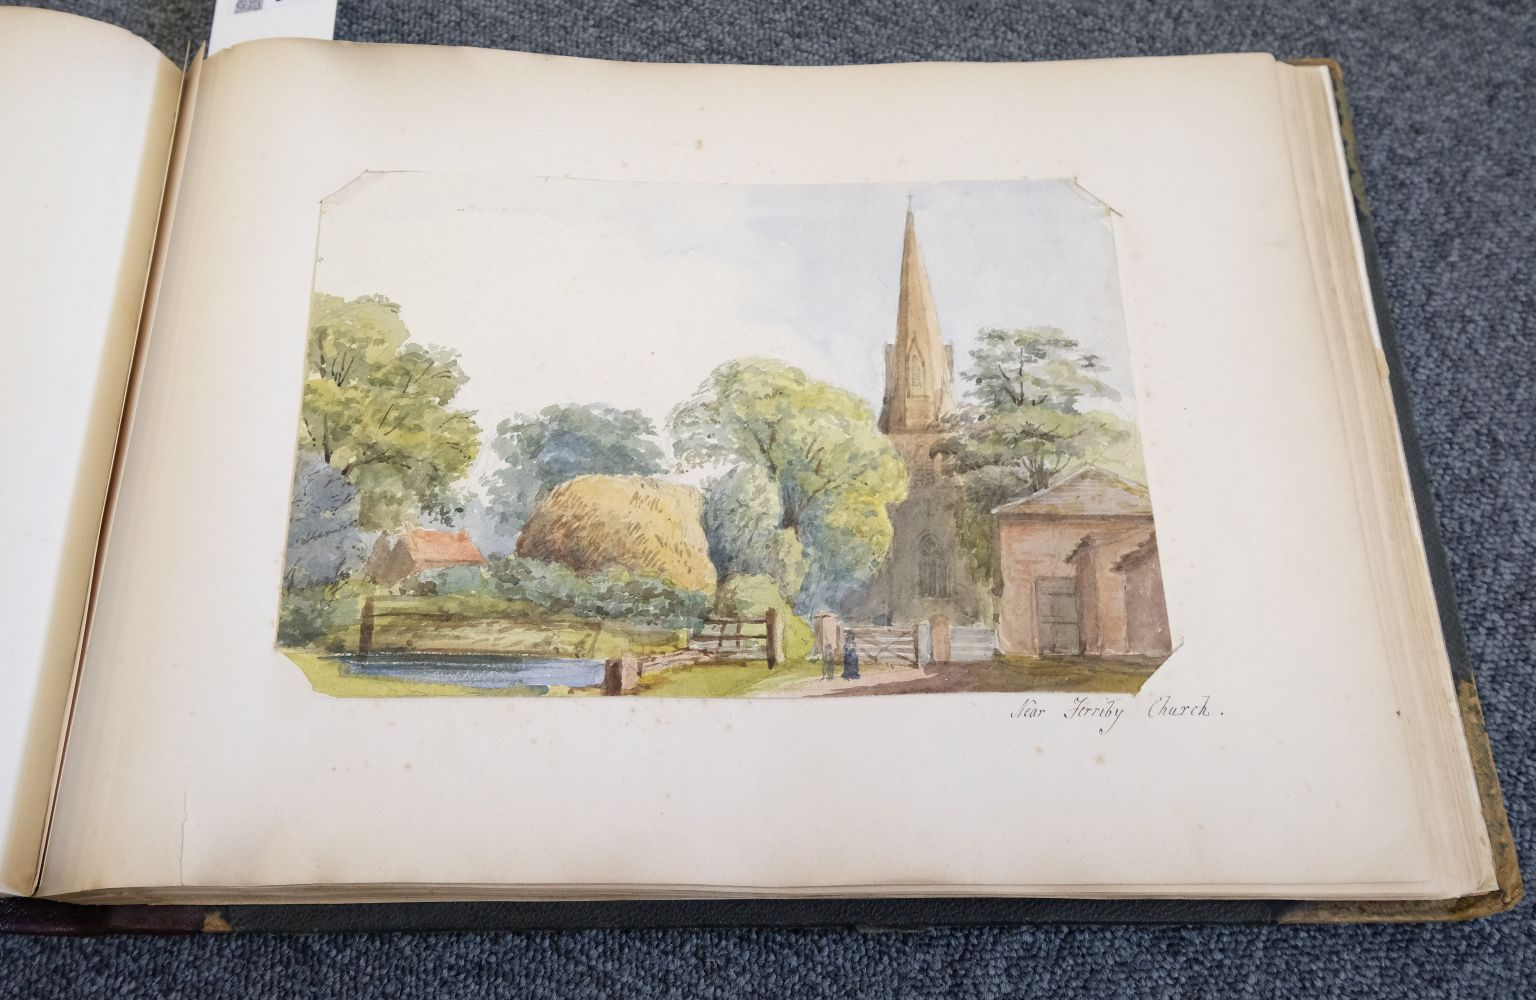 * Yorkshire. Hull and Neighbourhood, Sketches 1882-1883 - Image 12 of 15